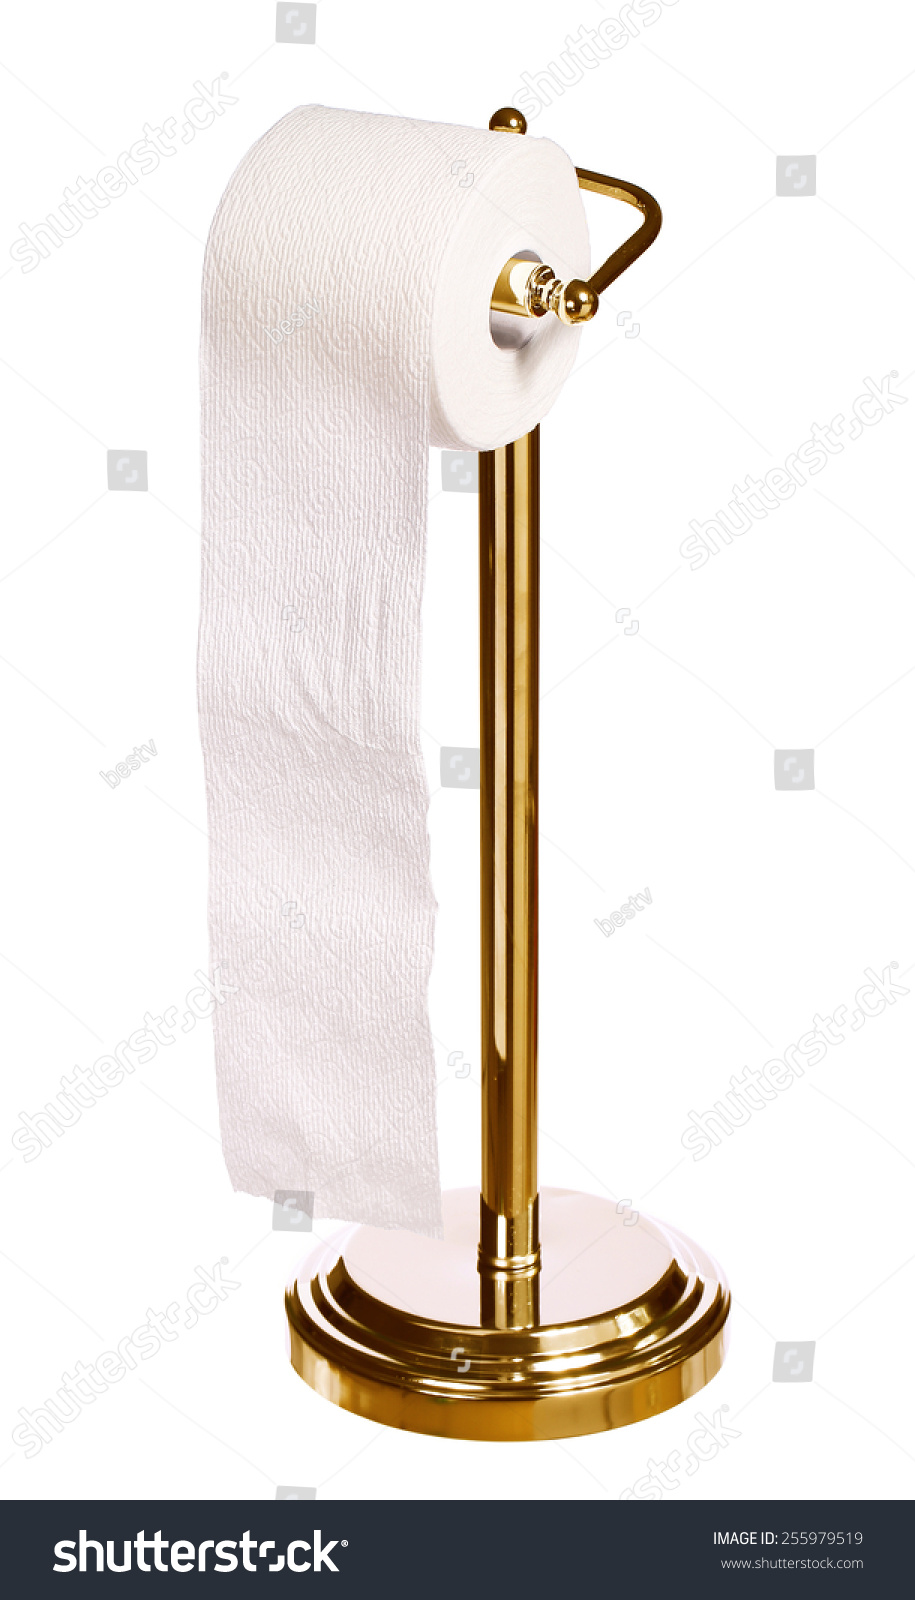 Gold toilet paper holder standing isolated stock photo 255979519 shutterstock - Gold toilet paper holder stand ...